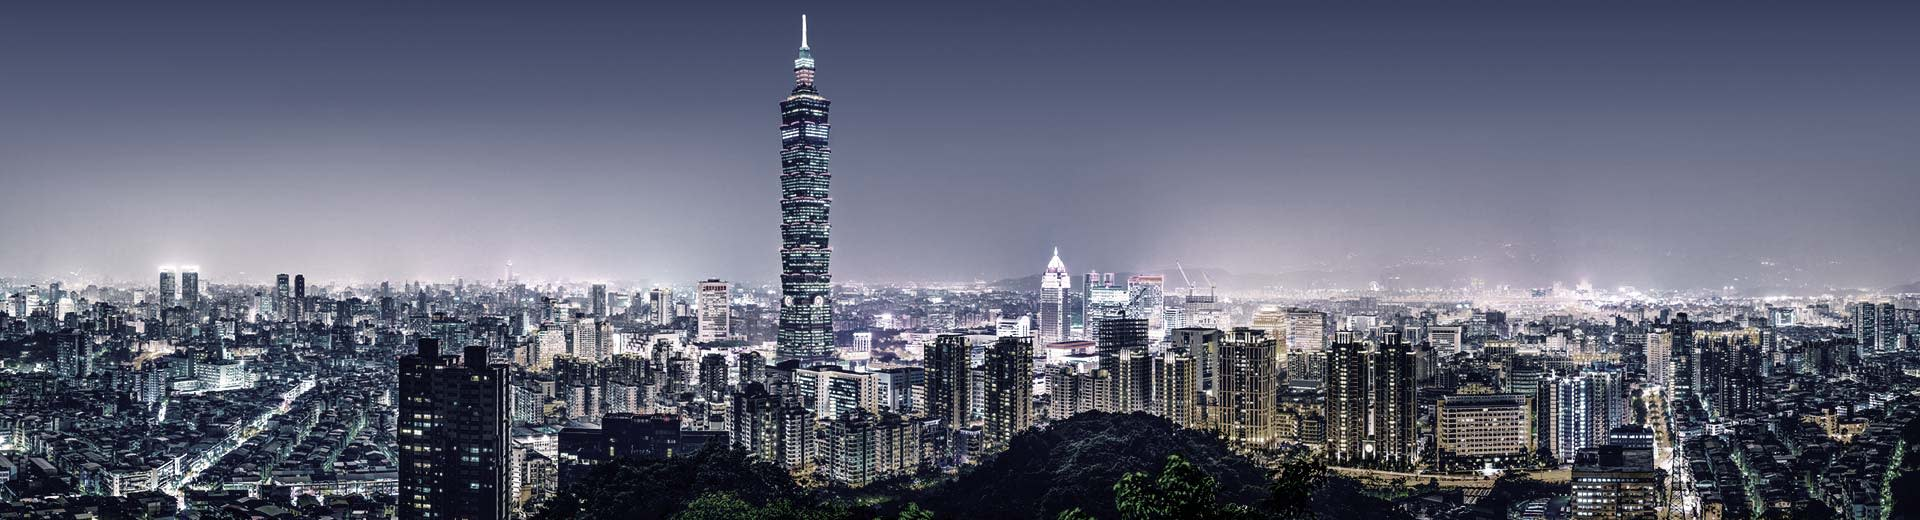 The glittering cityscape of Taipei, with innumerable skyscrapers and high-rise apartment complexes as far as the eye can see